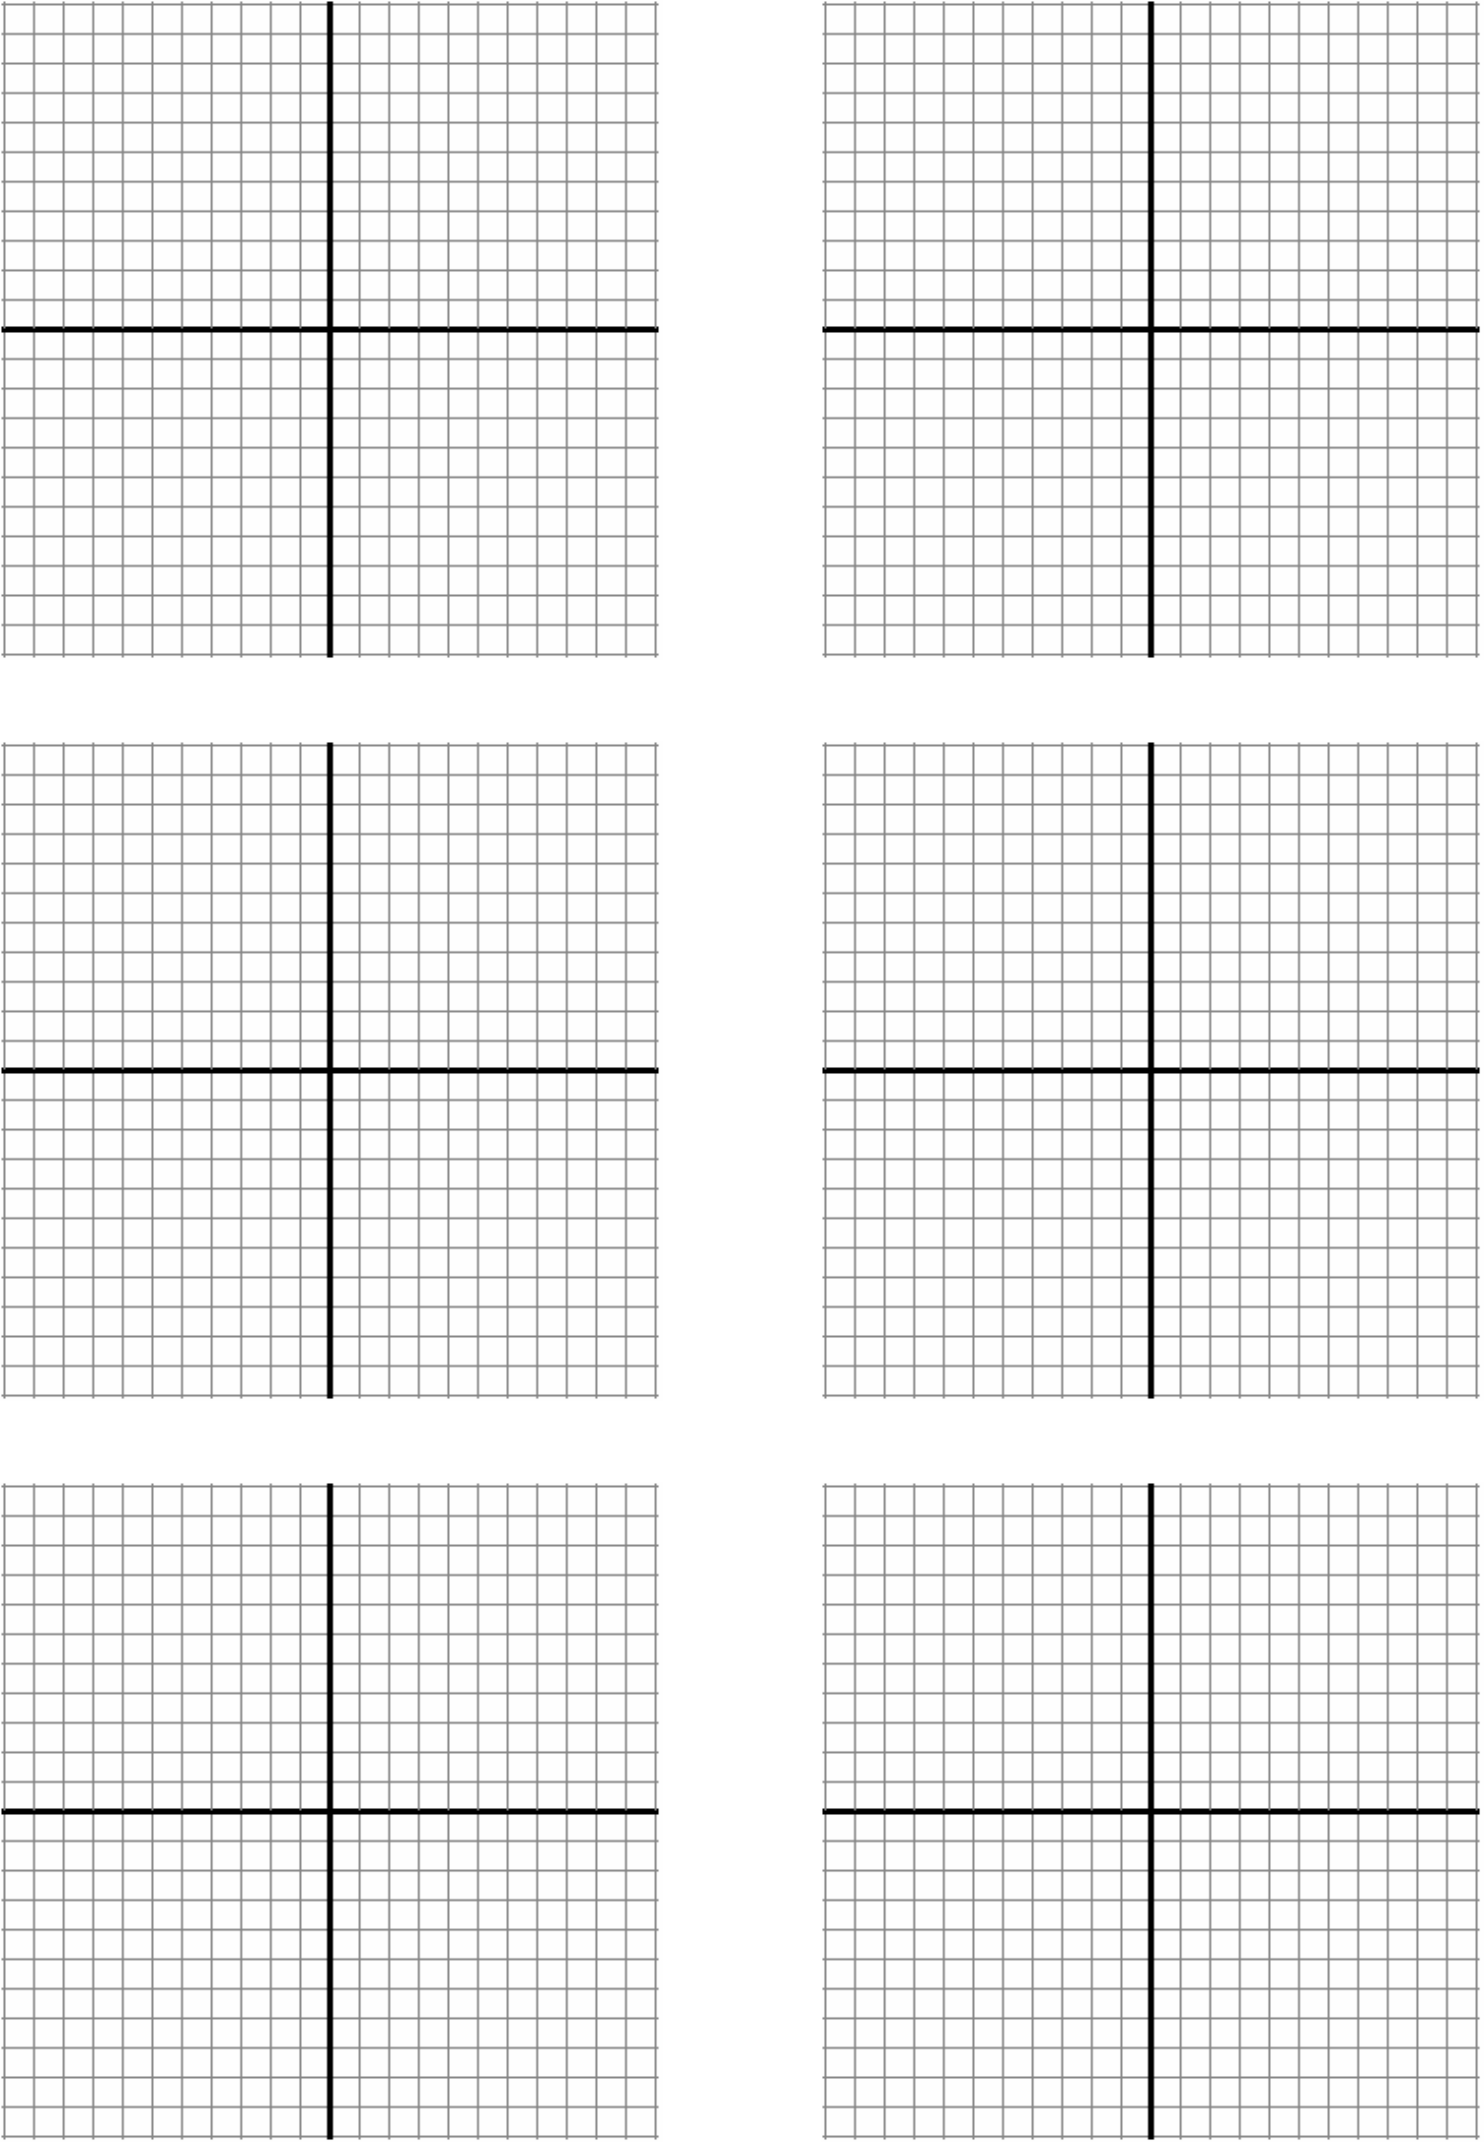 Comprehensive image with printable graph paper with axis